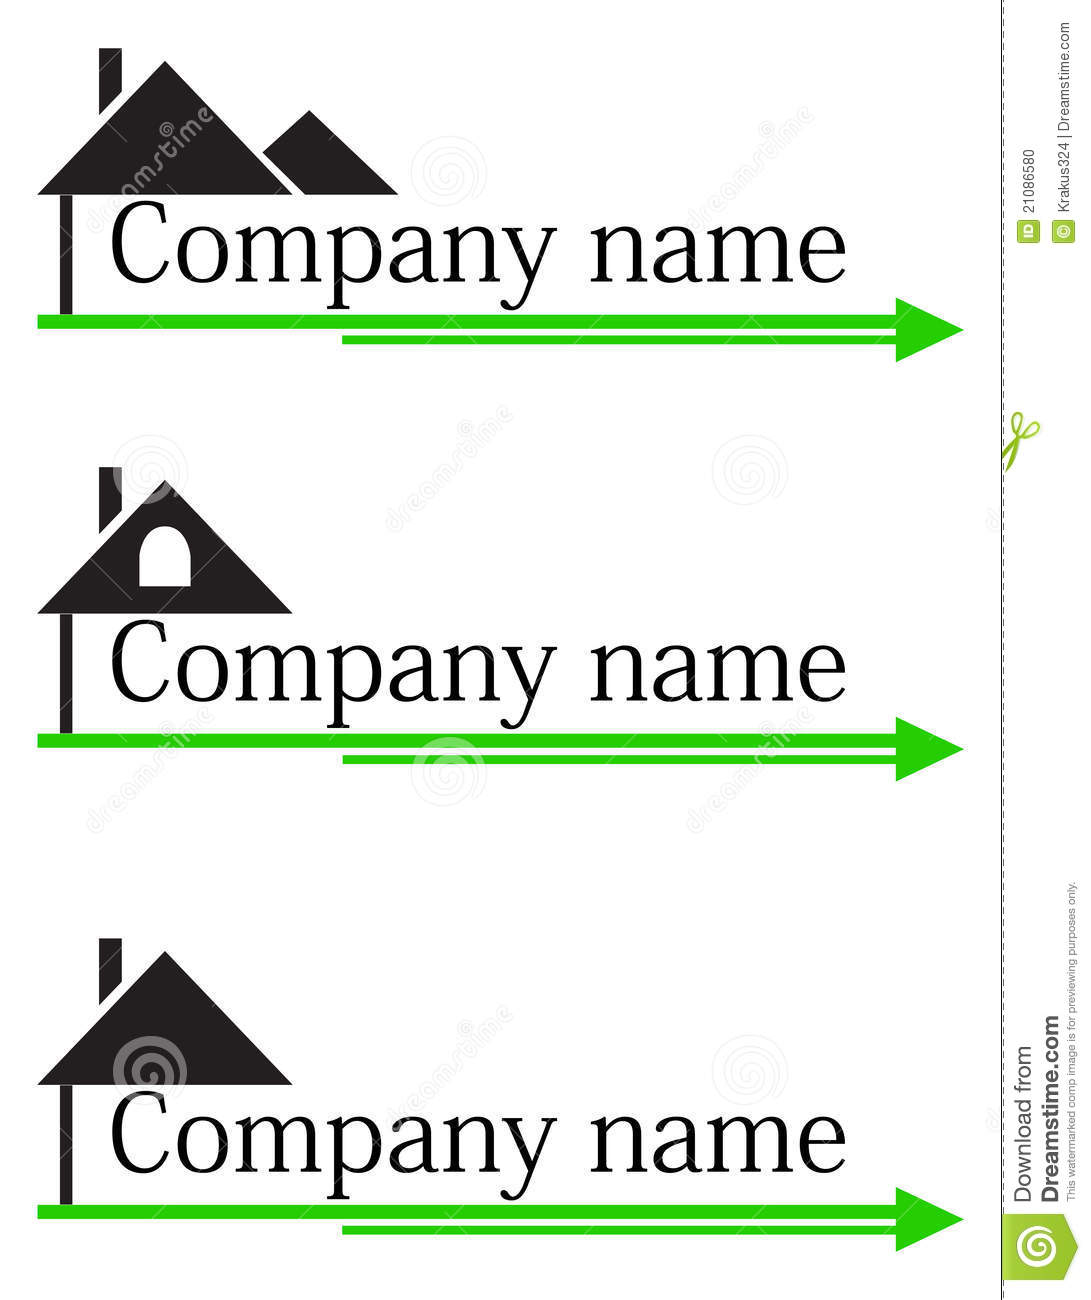 Dreams Construction Company: Construction Company Logo Stock Photo